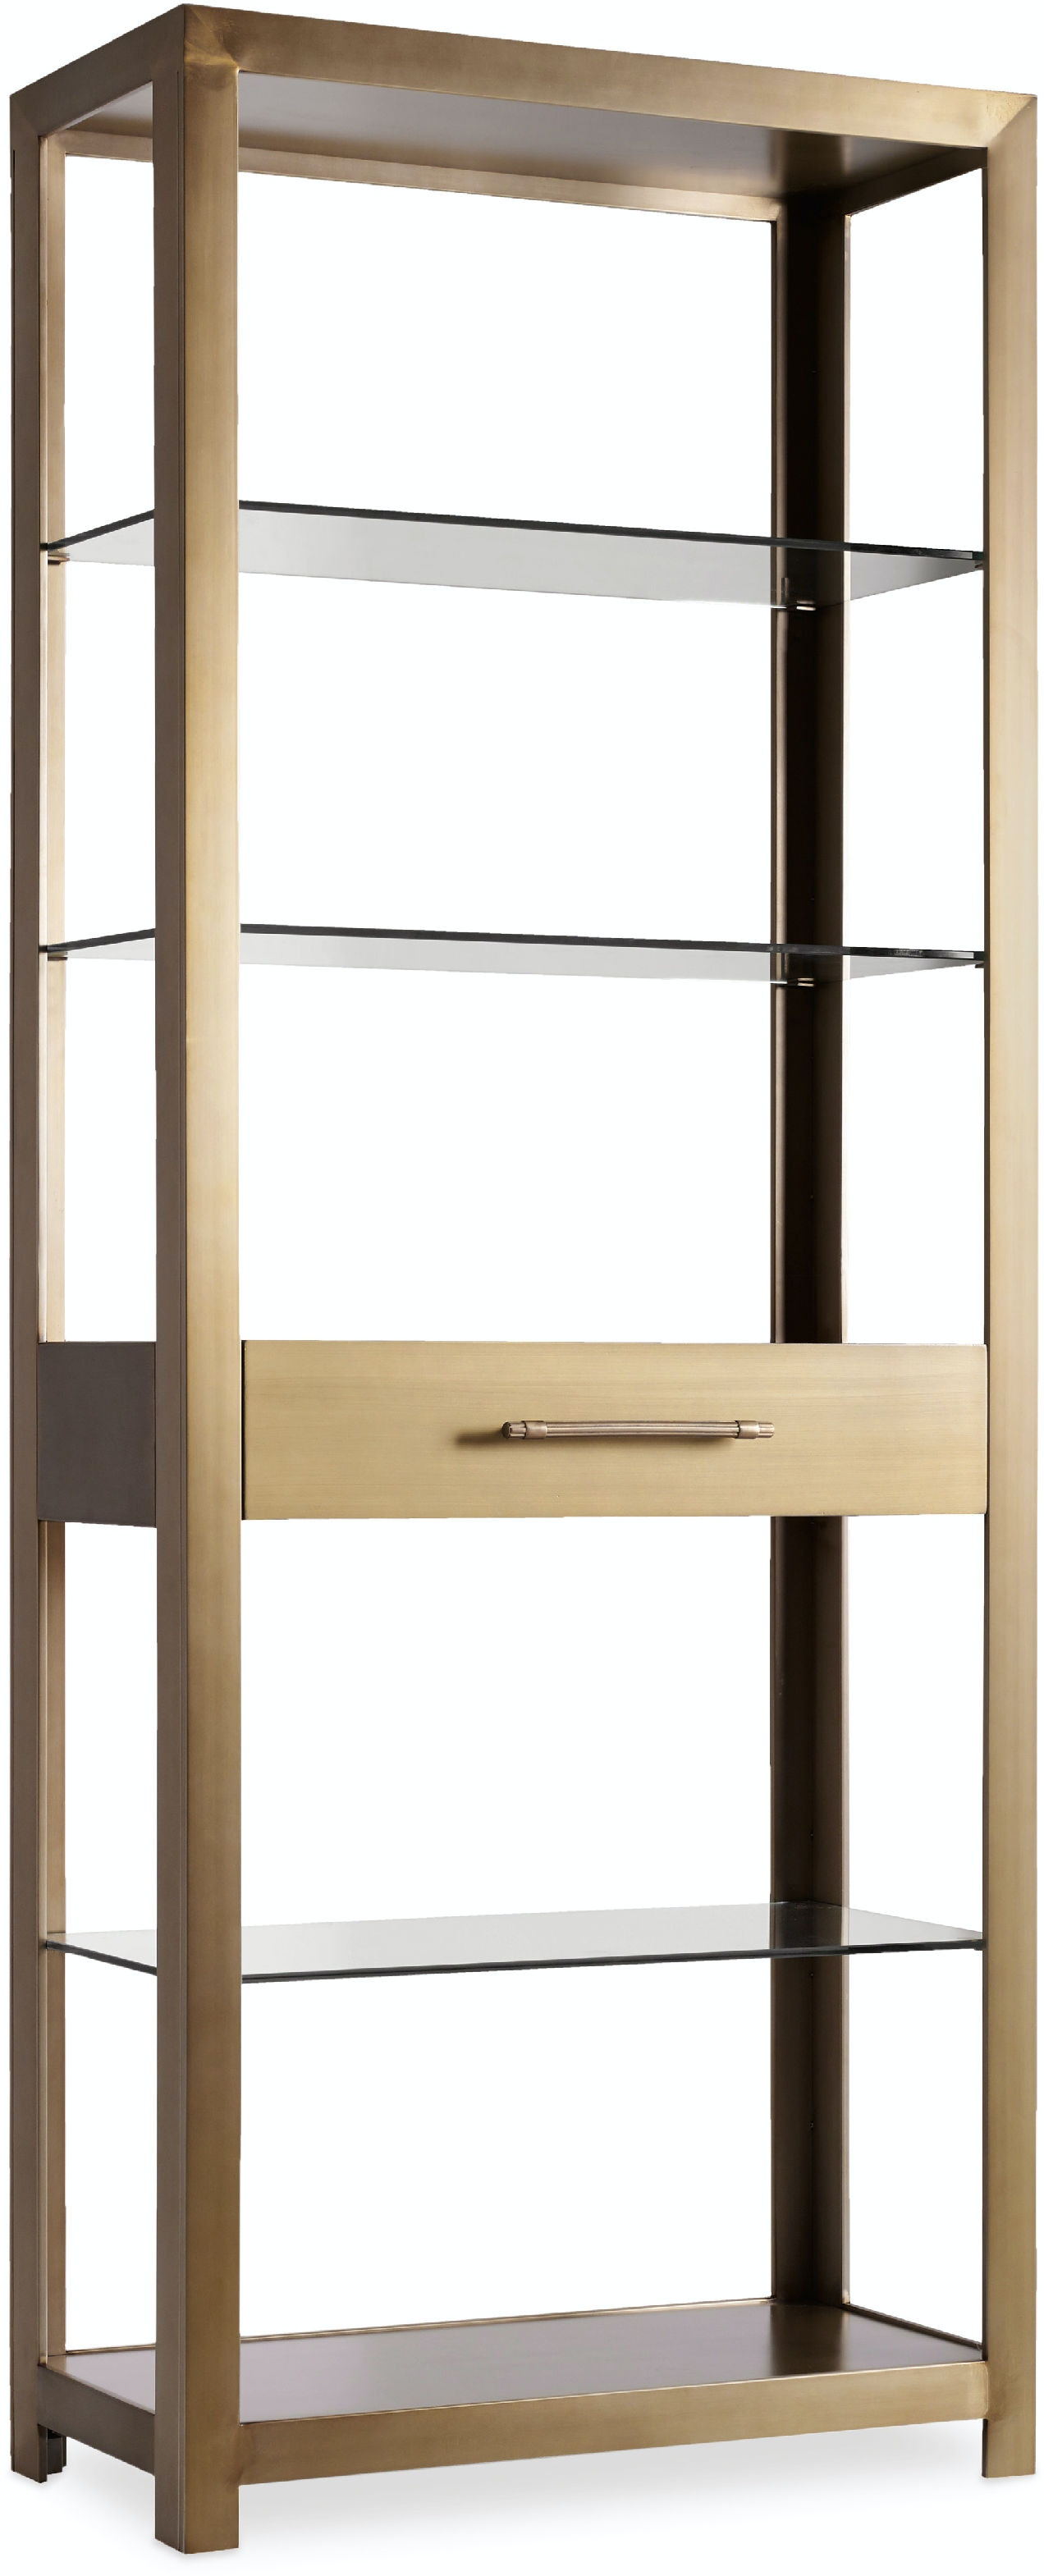 Hooker Furniture Home Office Curata Bunching Bookcase 1600